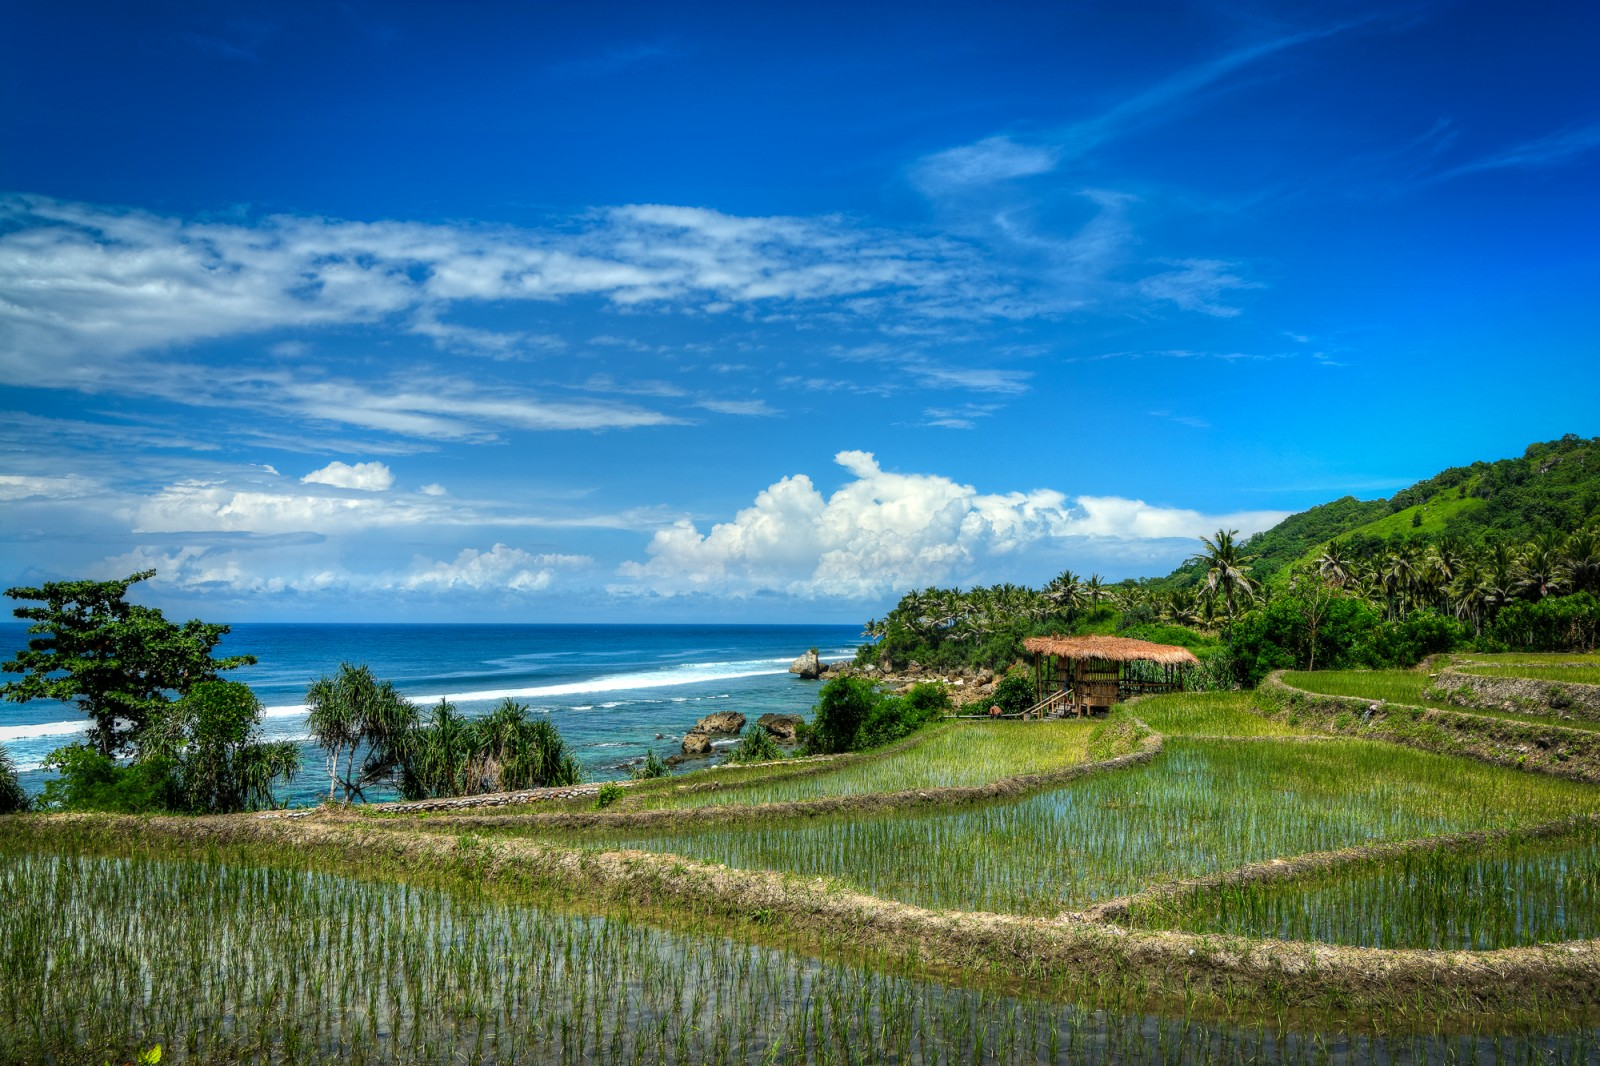 Indonesia rice field and ocean